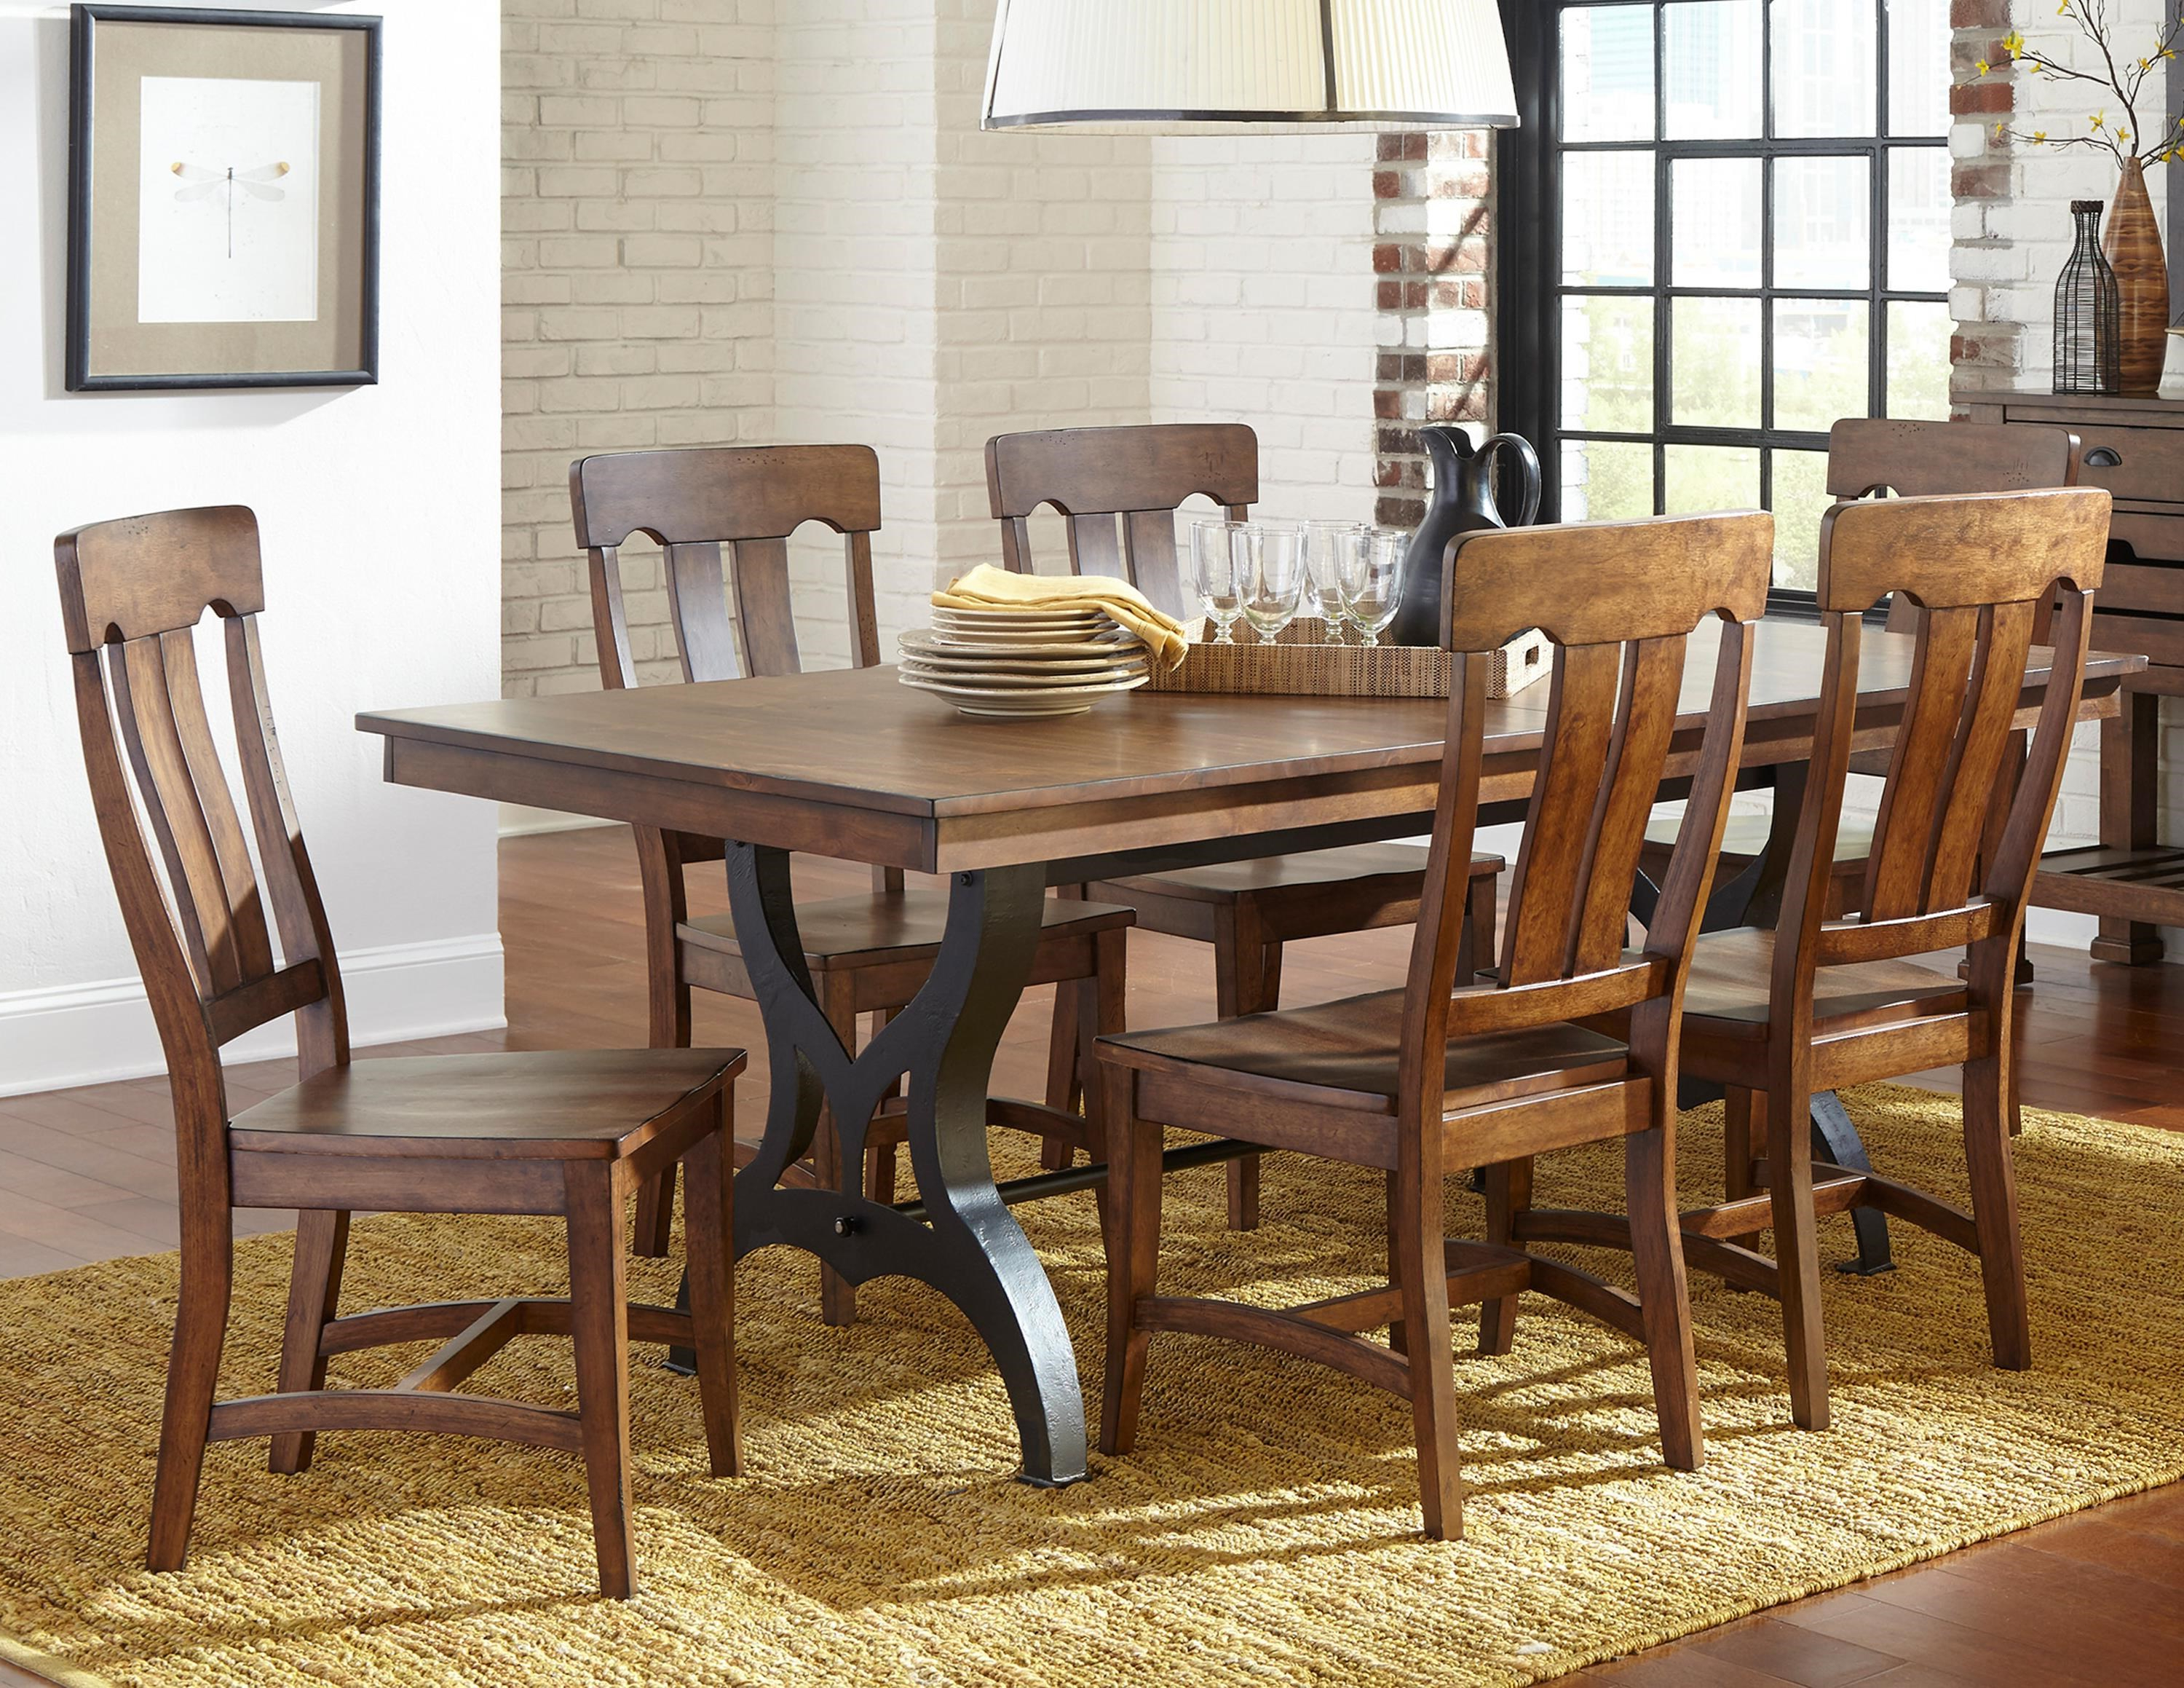 5 Piece Breakfast Table Sets & Vanity Pub Dining Sets In Manhattan Intended For Most Recent Noyes 5 Piece Dining Sets (View 20 of 25)